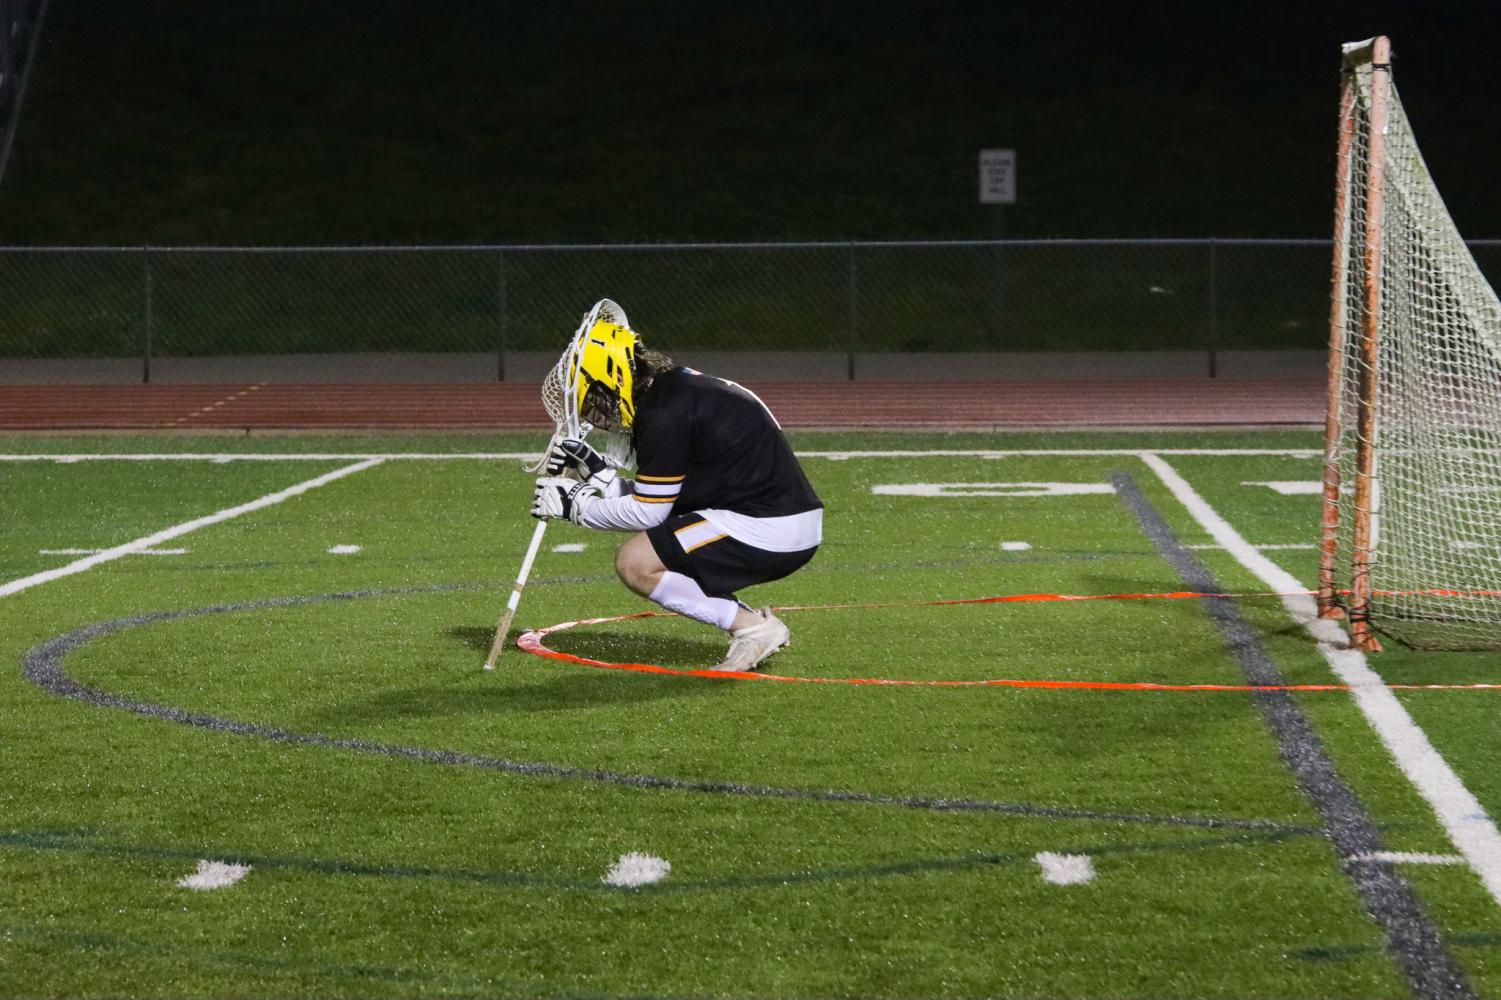 Photo+Gallery%3A+Boys+Lacrosse+Defeats+Lafayette+to+Advance+to+Second+Round+of+Playoffs